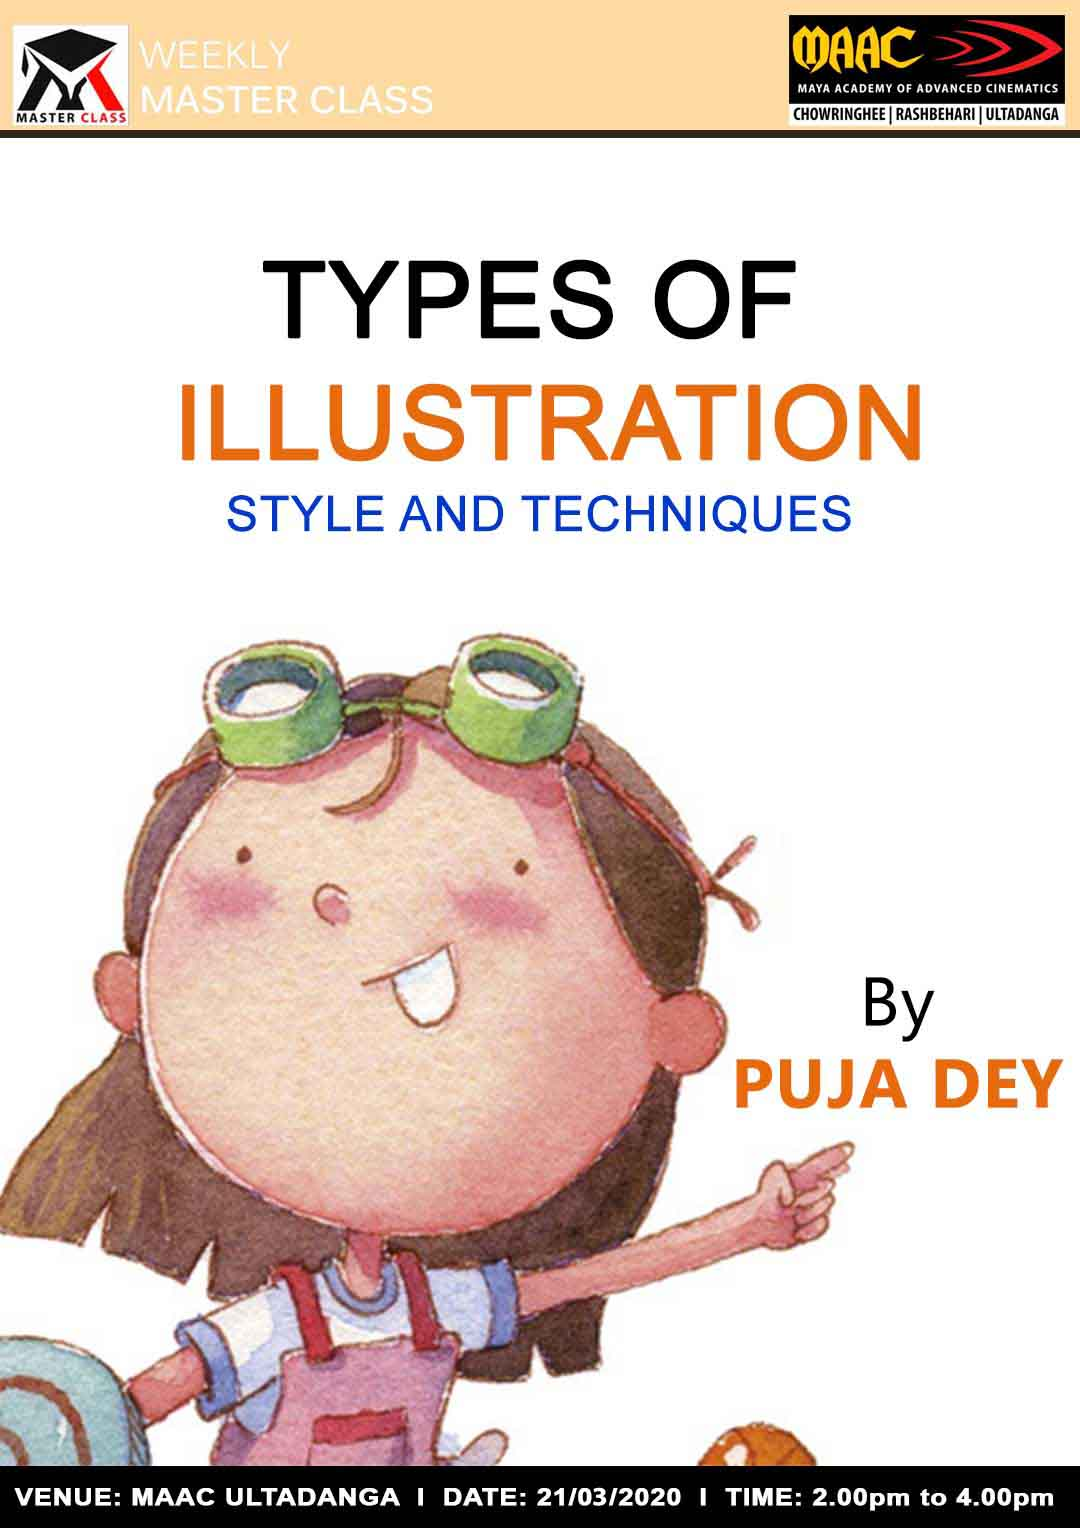 Weekly Master Class on Types Of Illustration